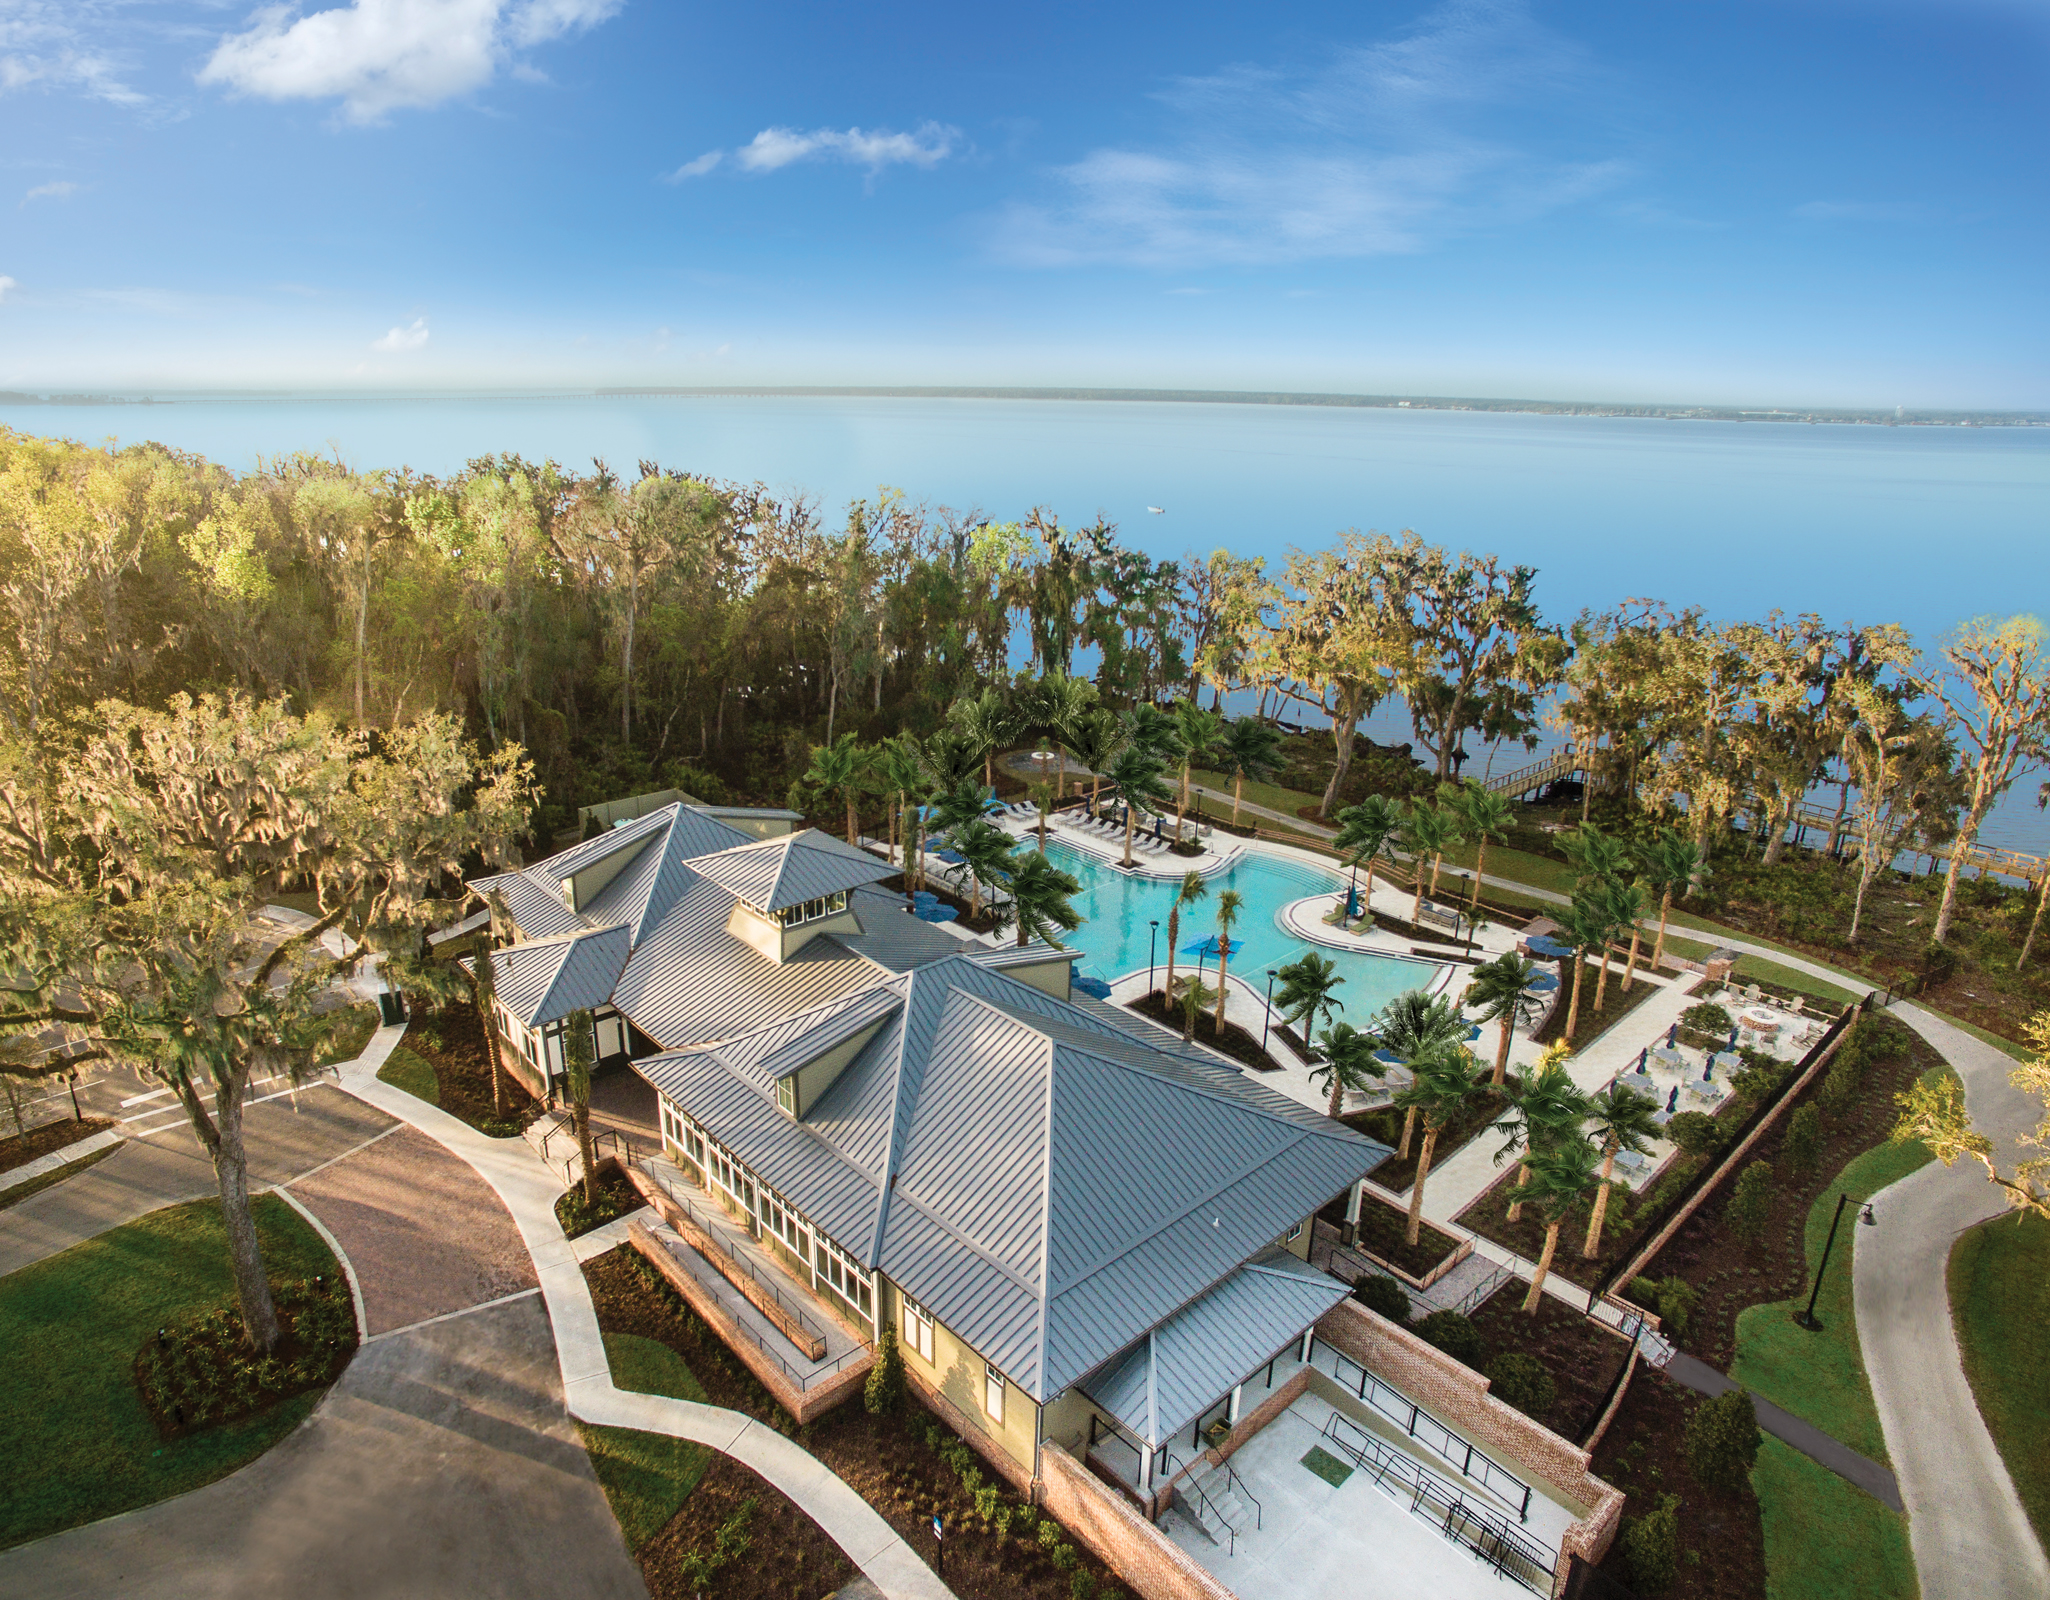 RiverTown - Arbors Amenities in St. Johns Florida by Mattamy Homes